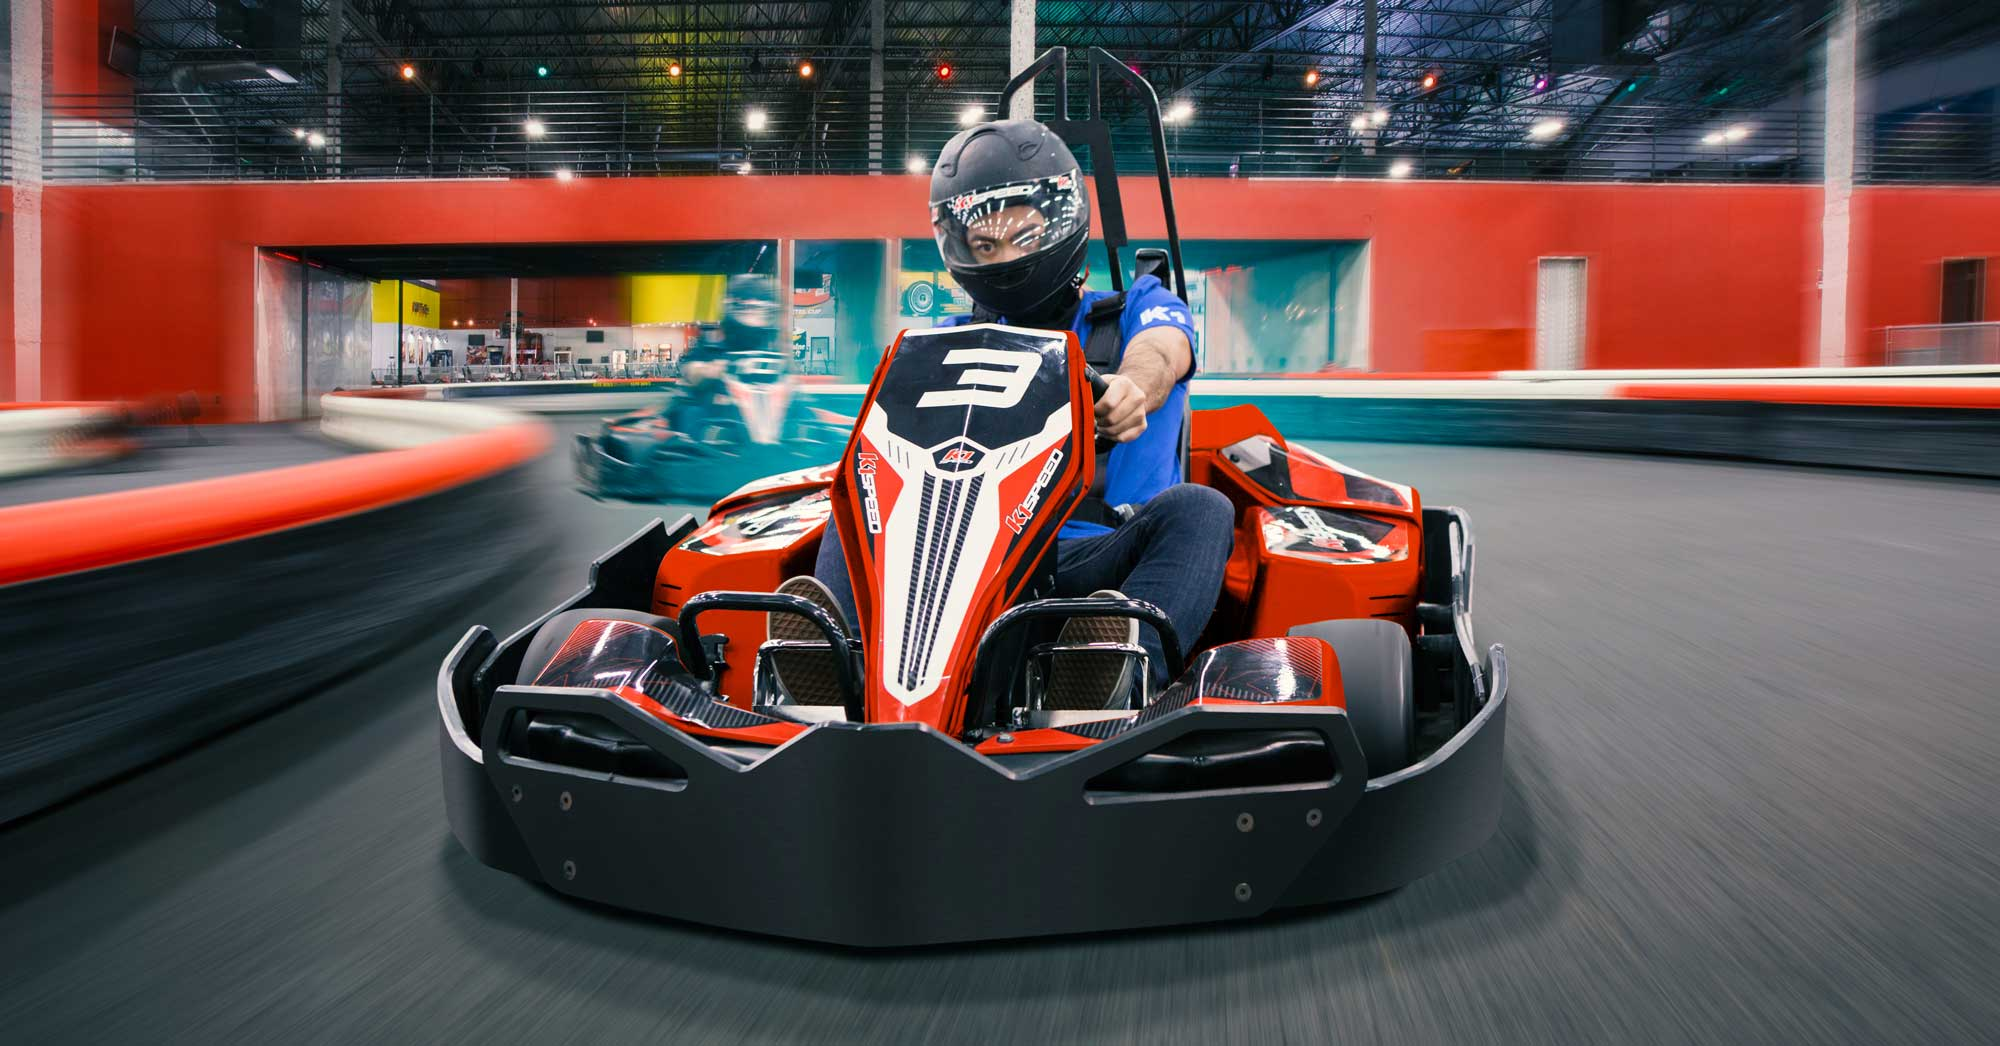 K1 Speed | Indoor Go-Kart Racing Anaheim